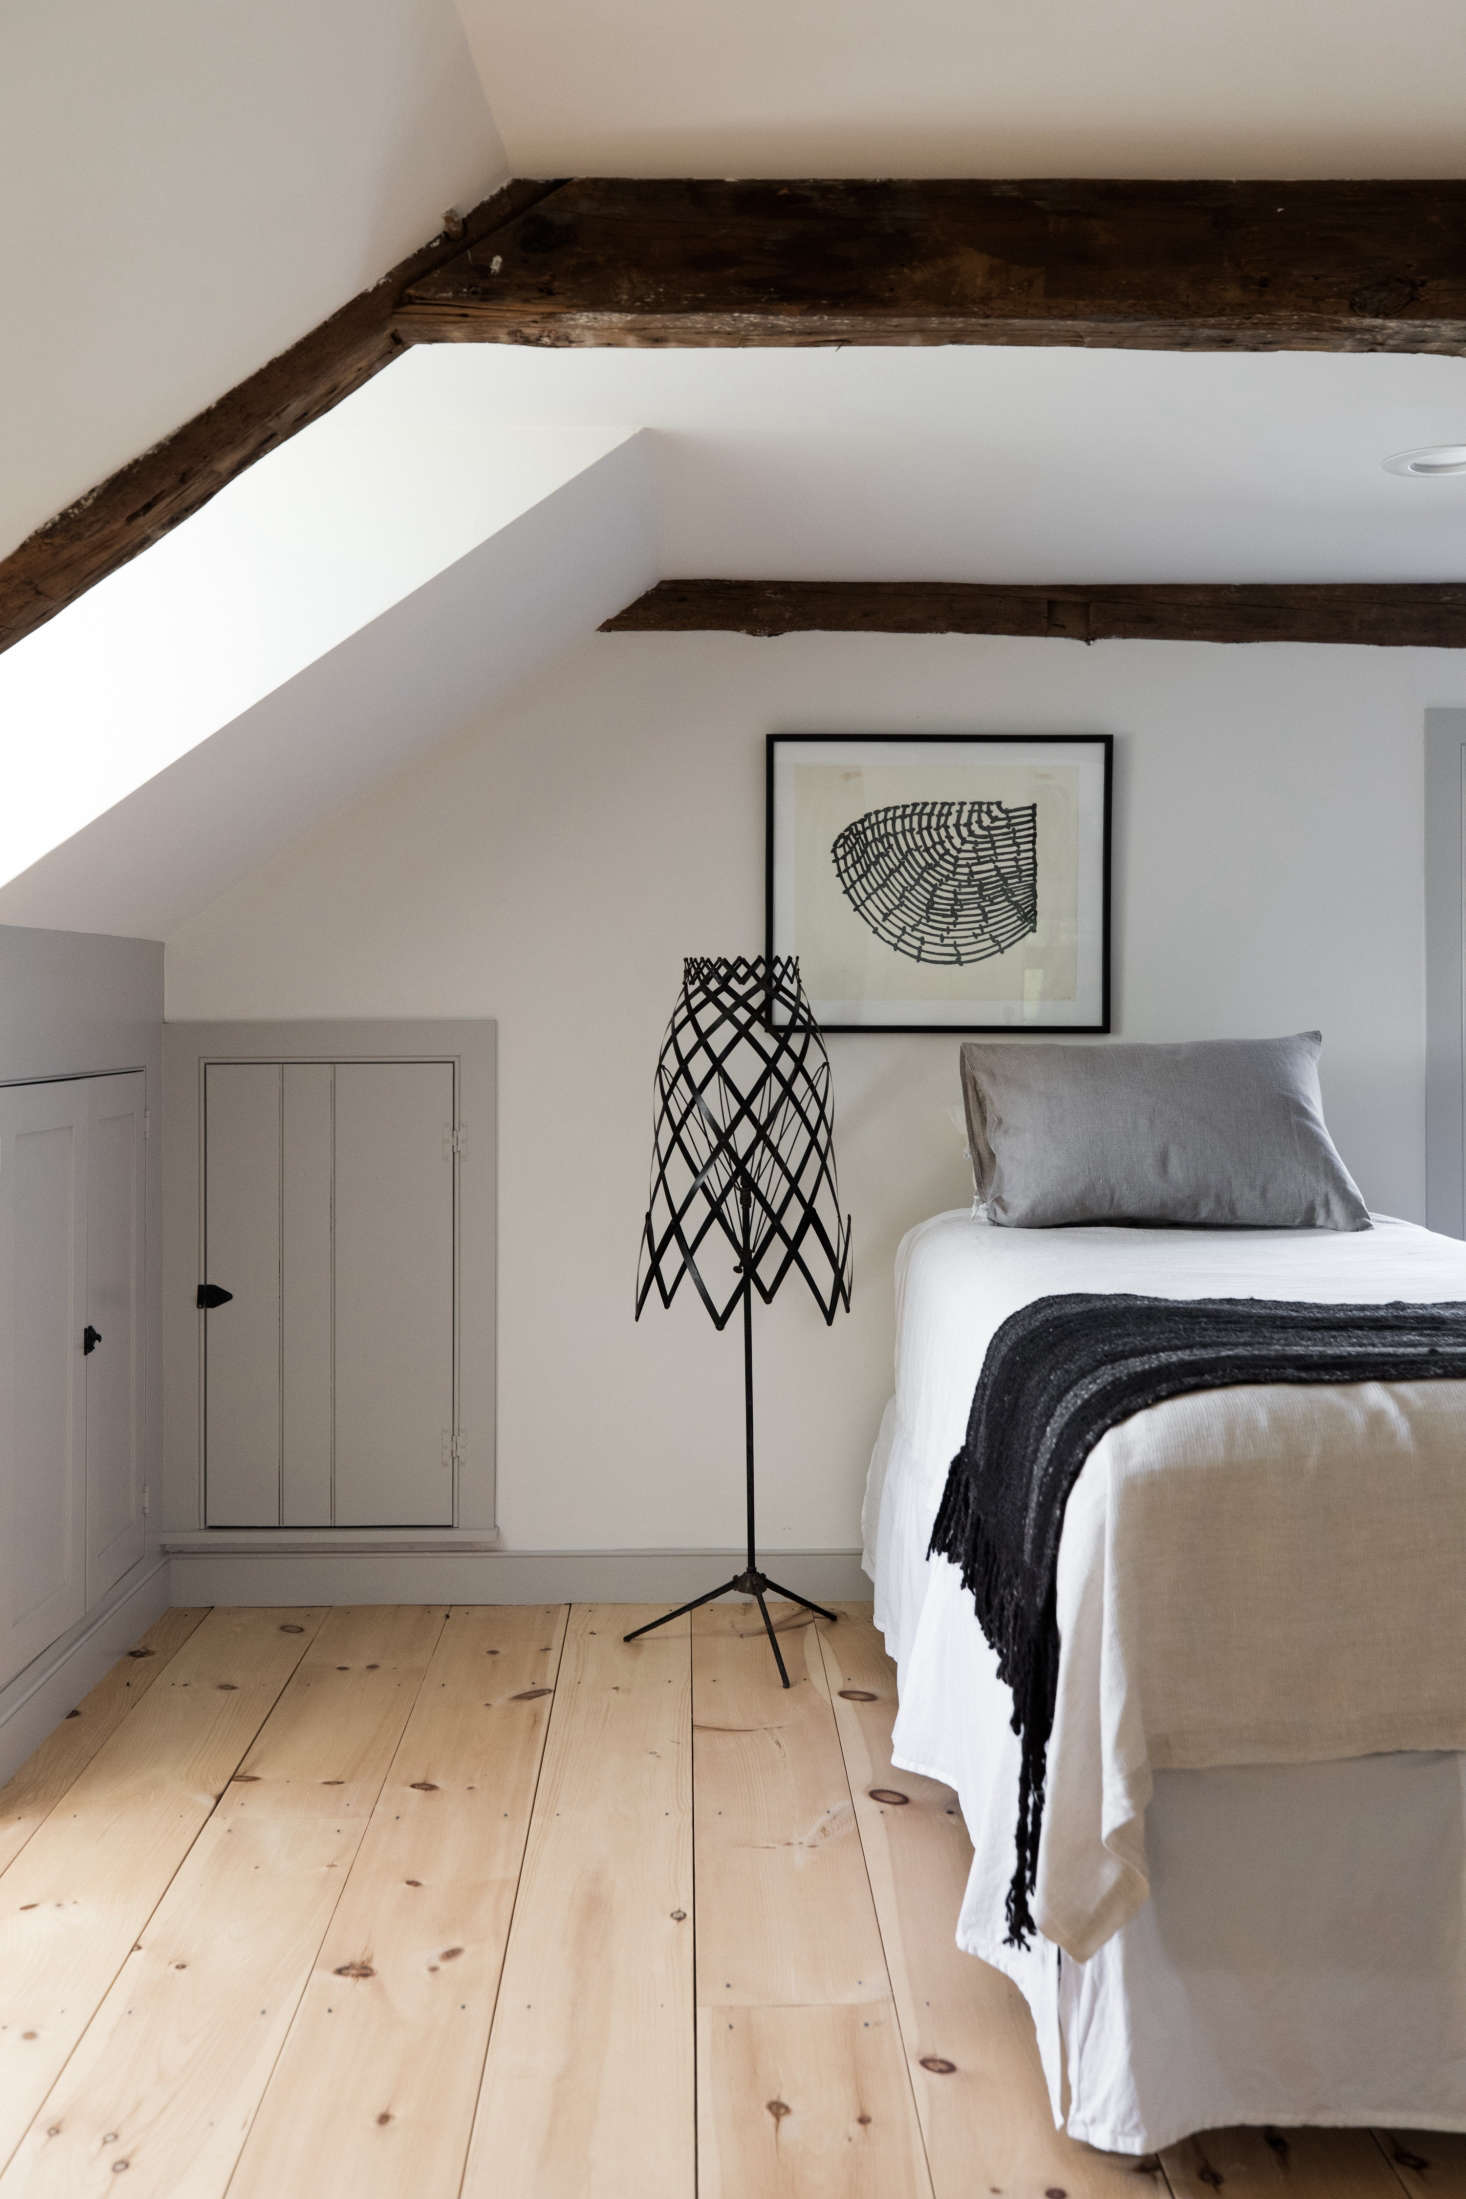 In a narrow bedroom, Esteves preserved the under-eaves cabinets, which his mother uses to store spare blankets.